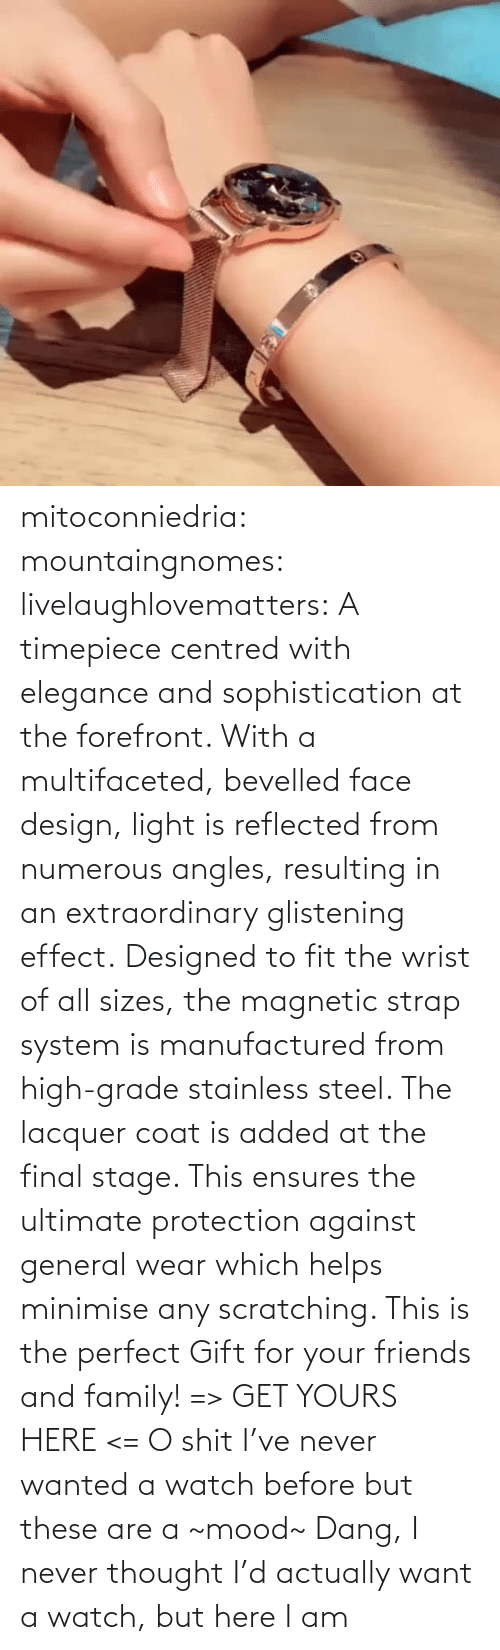 com: mitoconniedria: mountaingnomes:   livelaughlovematters:  A timepiece centred with elegance and sophistication at the forefront. With a multifaceted, bevelled face design, light is reflected from numerous angles, resulting in an extraordinary glistening effect. Designed to fit the wrist of all sizes, the magnetic strap system is manufactured from high-grade stainless steel. The lacquer coat is added at the final stage. This ensures the ultimate protection against general wear which helps minimise any scratching. This is the perfect Gift for your friends and family! => GET YOURS HERE <=  O shit I've never wanted a watch before but these are a ~mood~    Dang, I never thought I'd actually want a watch, but here I am